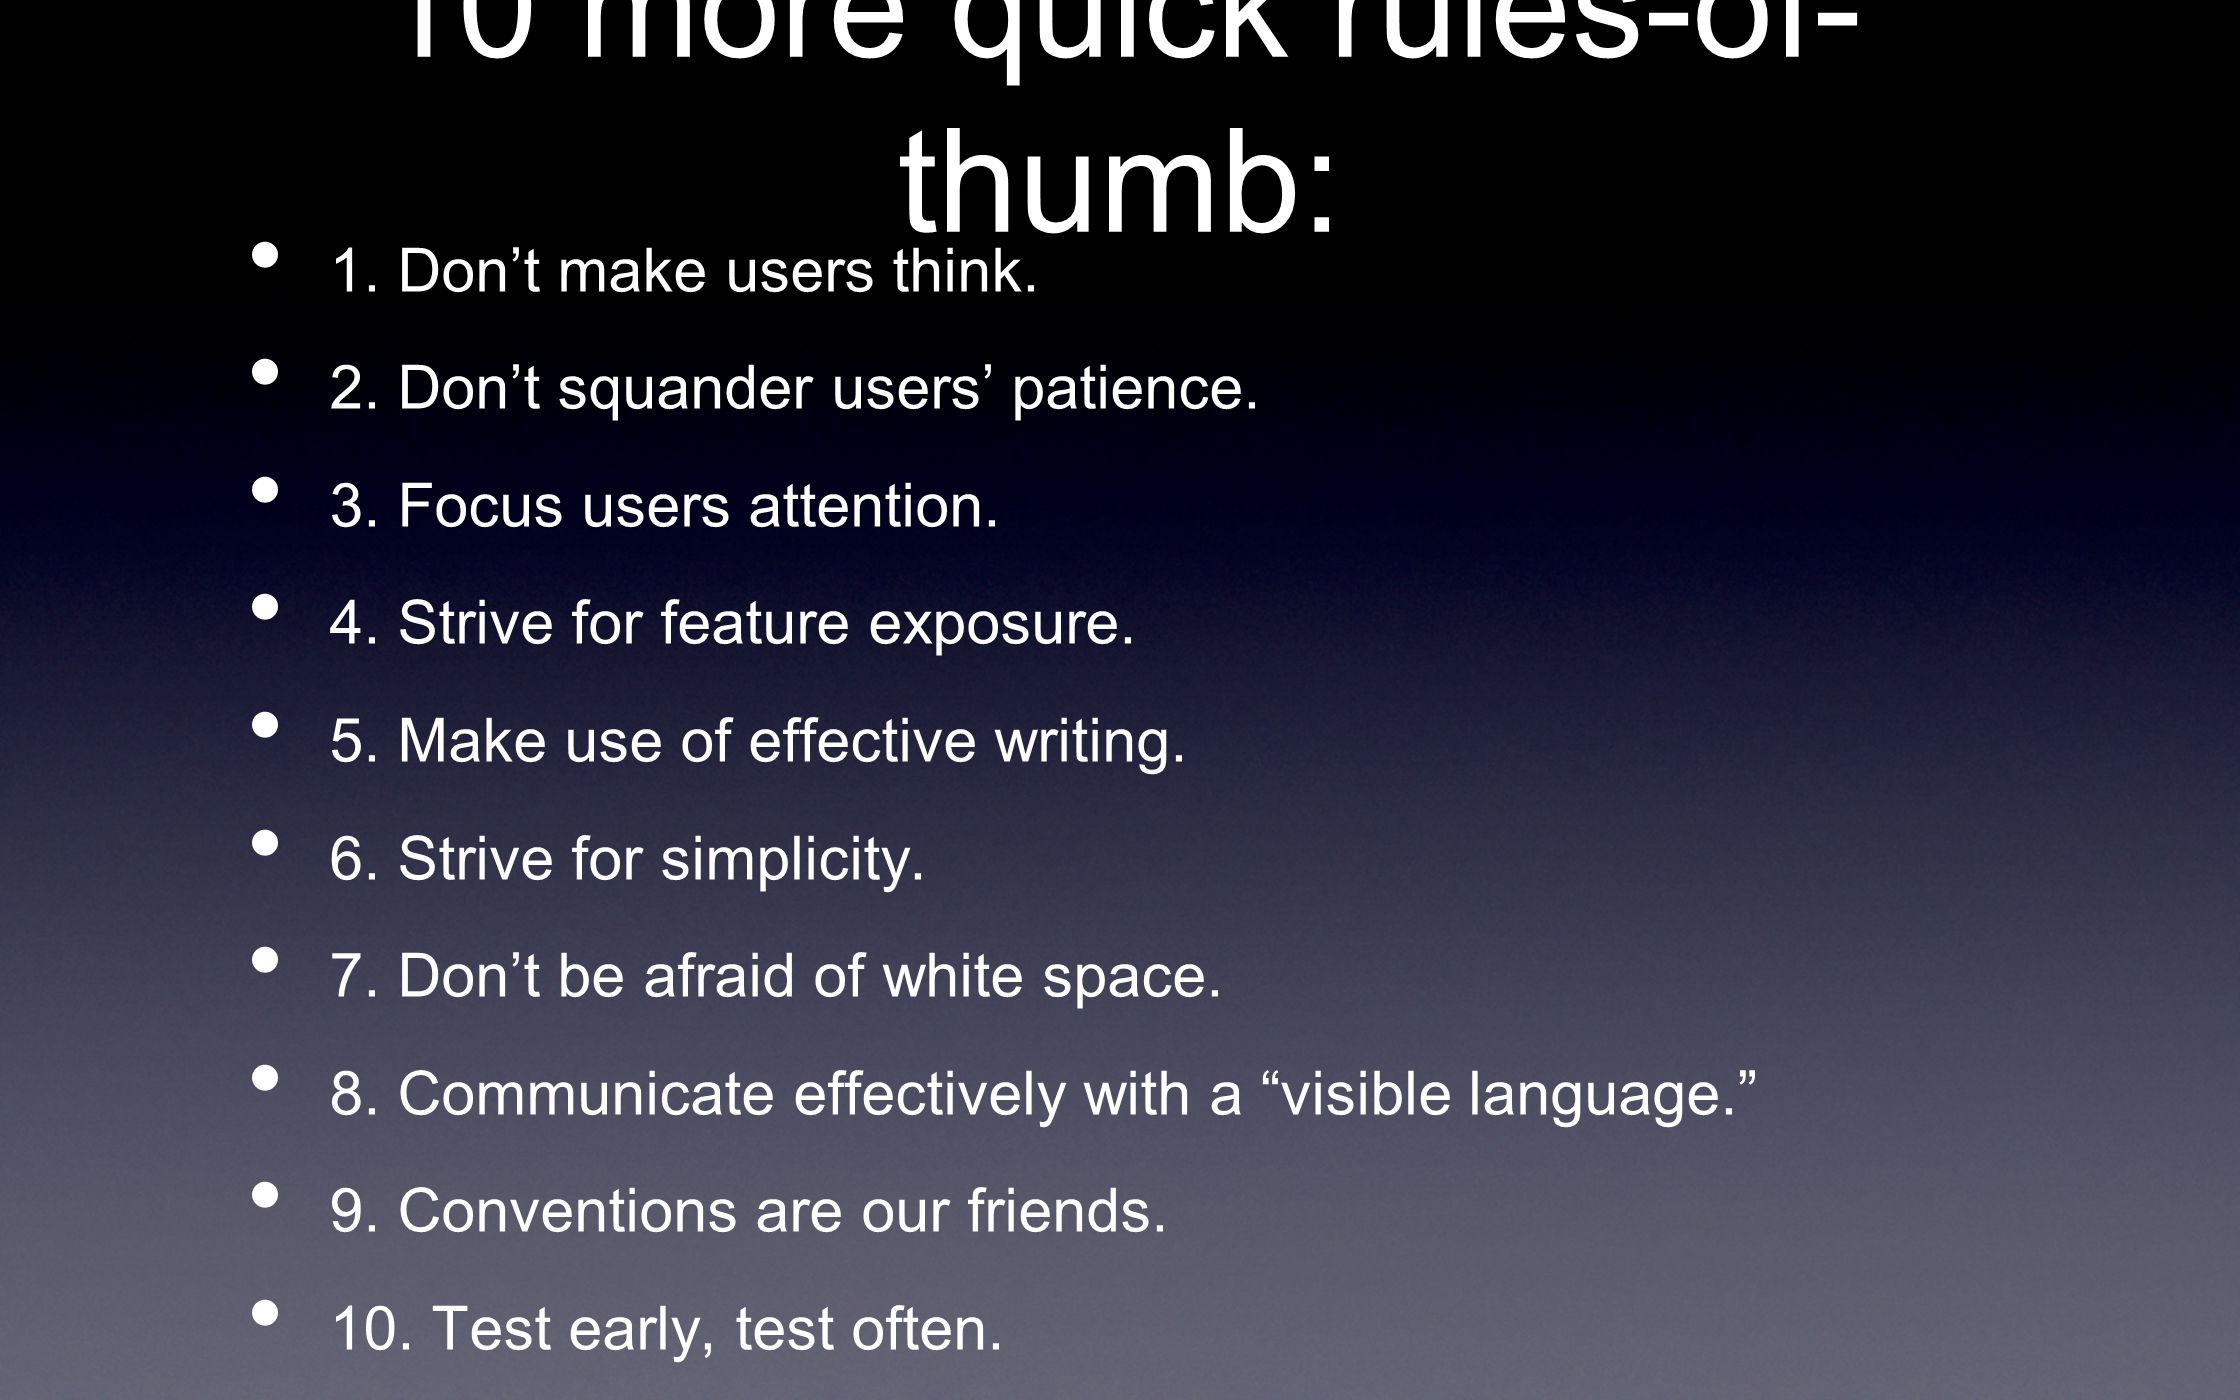 10 more quick rules-of-thumb: